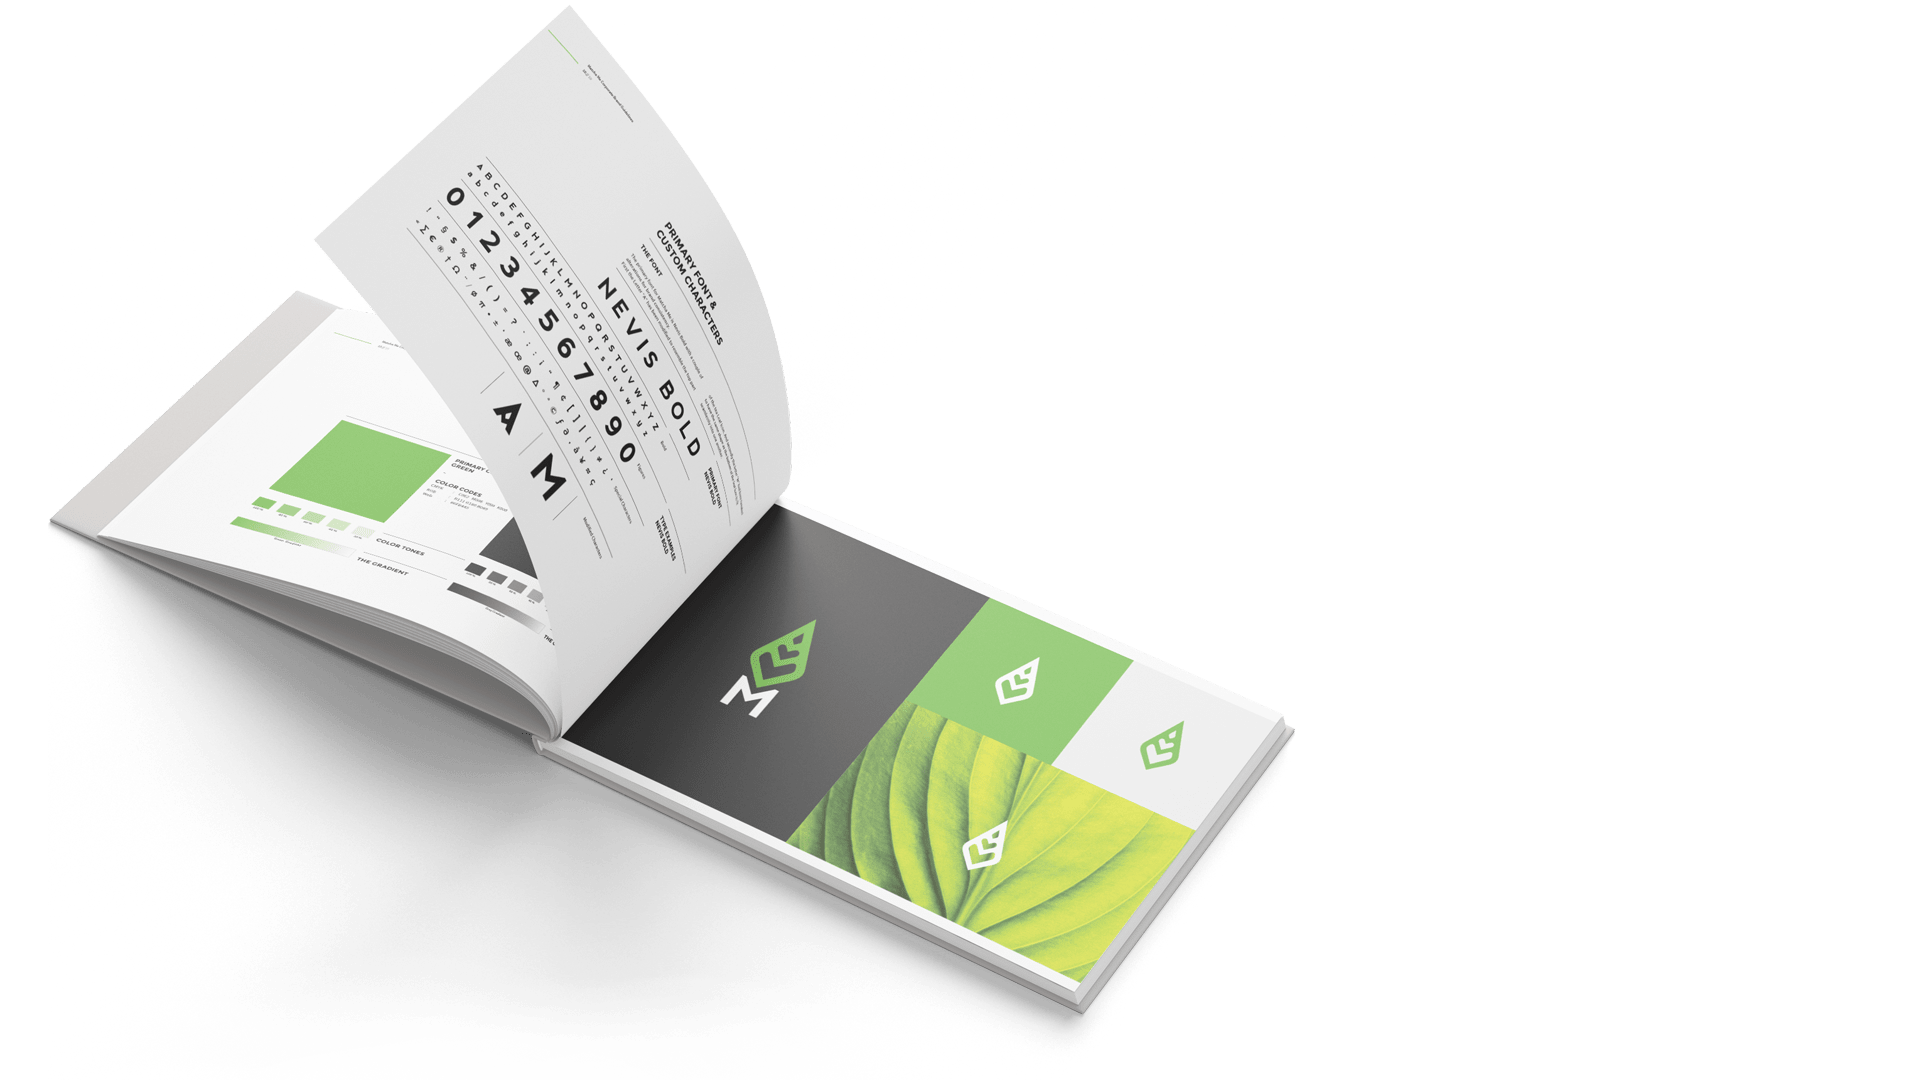 Matcha Me Branding Guidelines